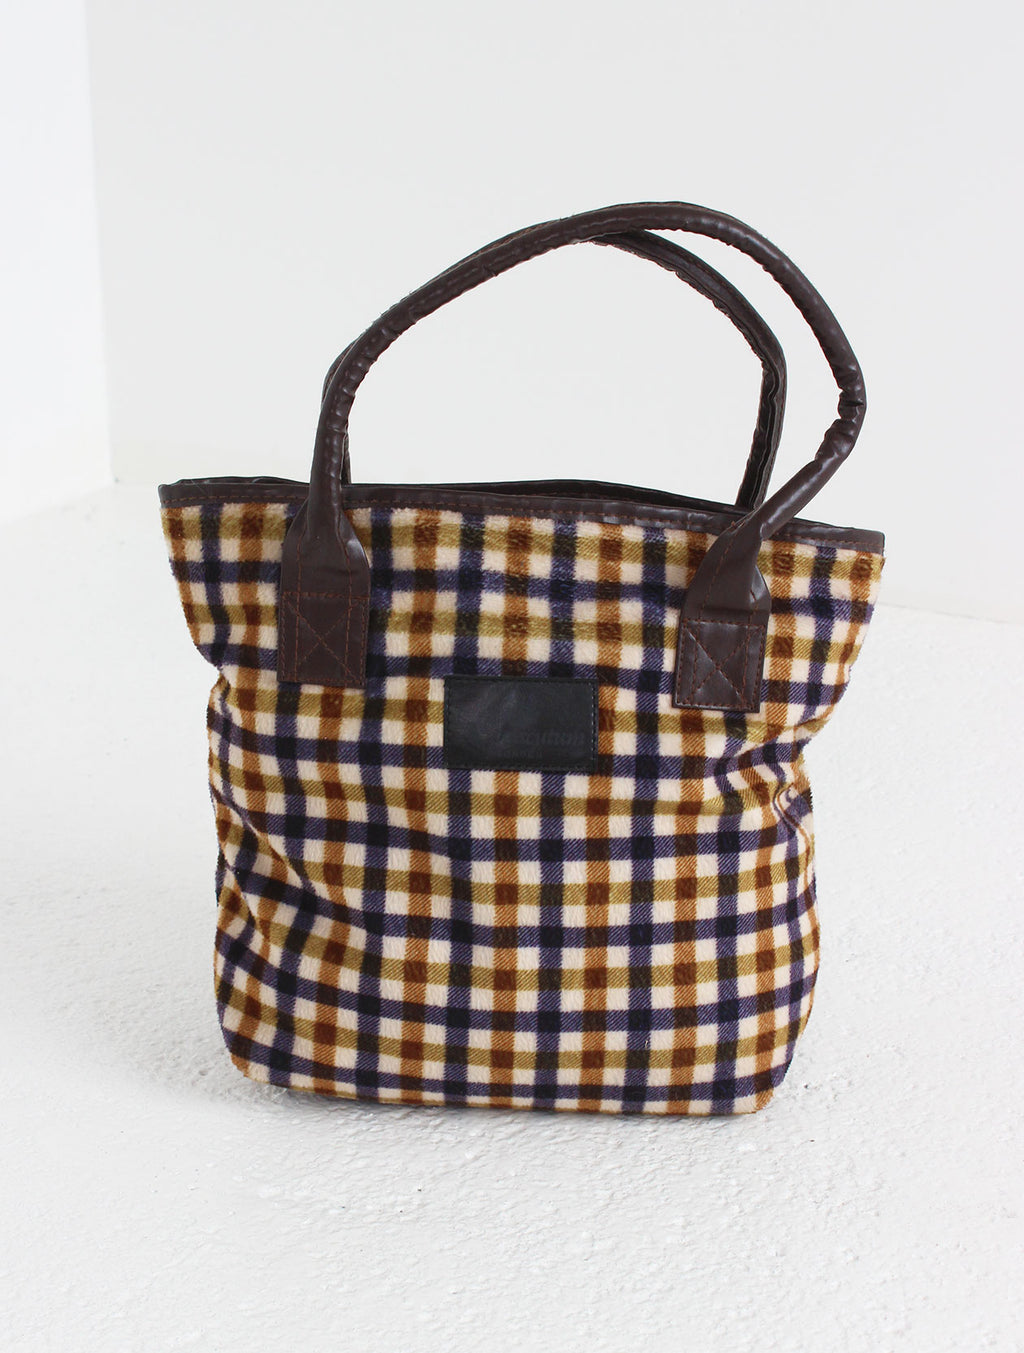 Aquascutum House Check Handbag